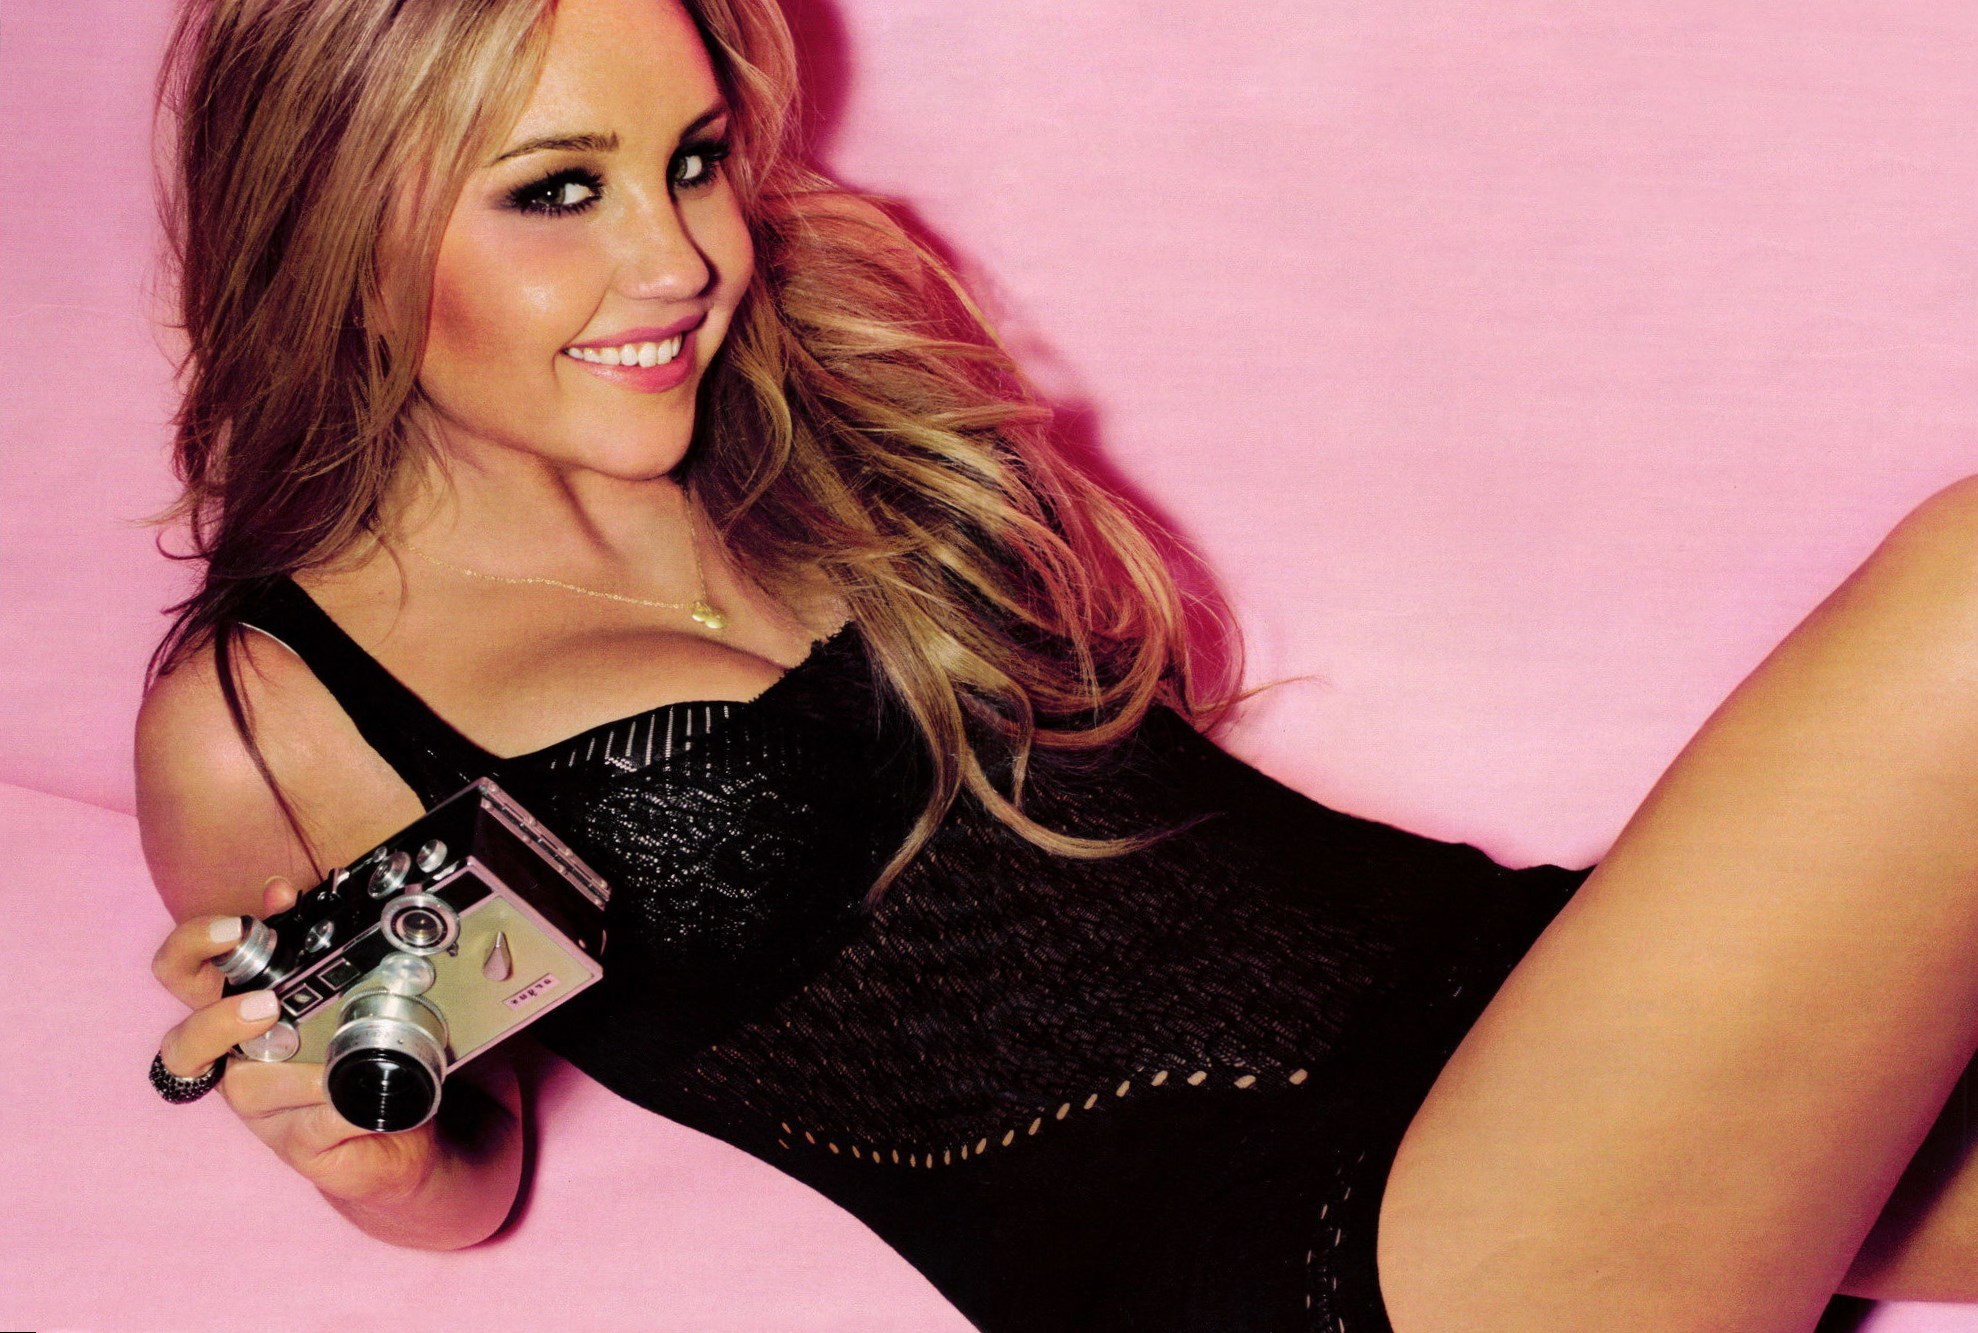 Amanda Bynes - Height, Weight and Body Measurements